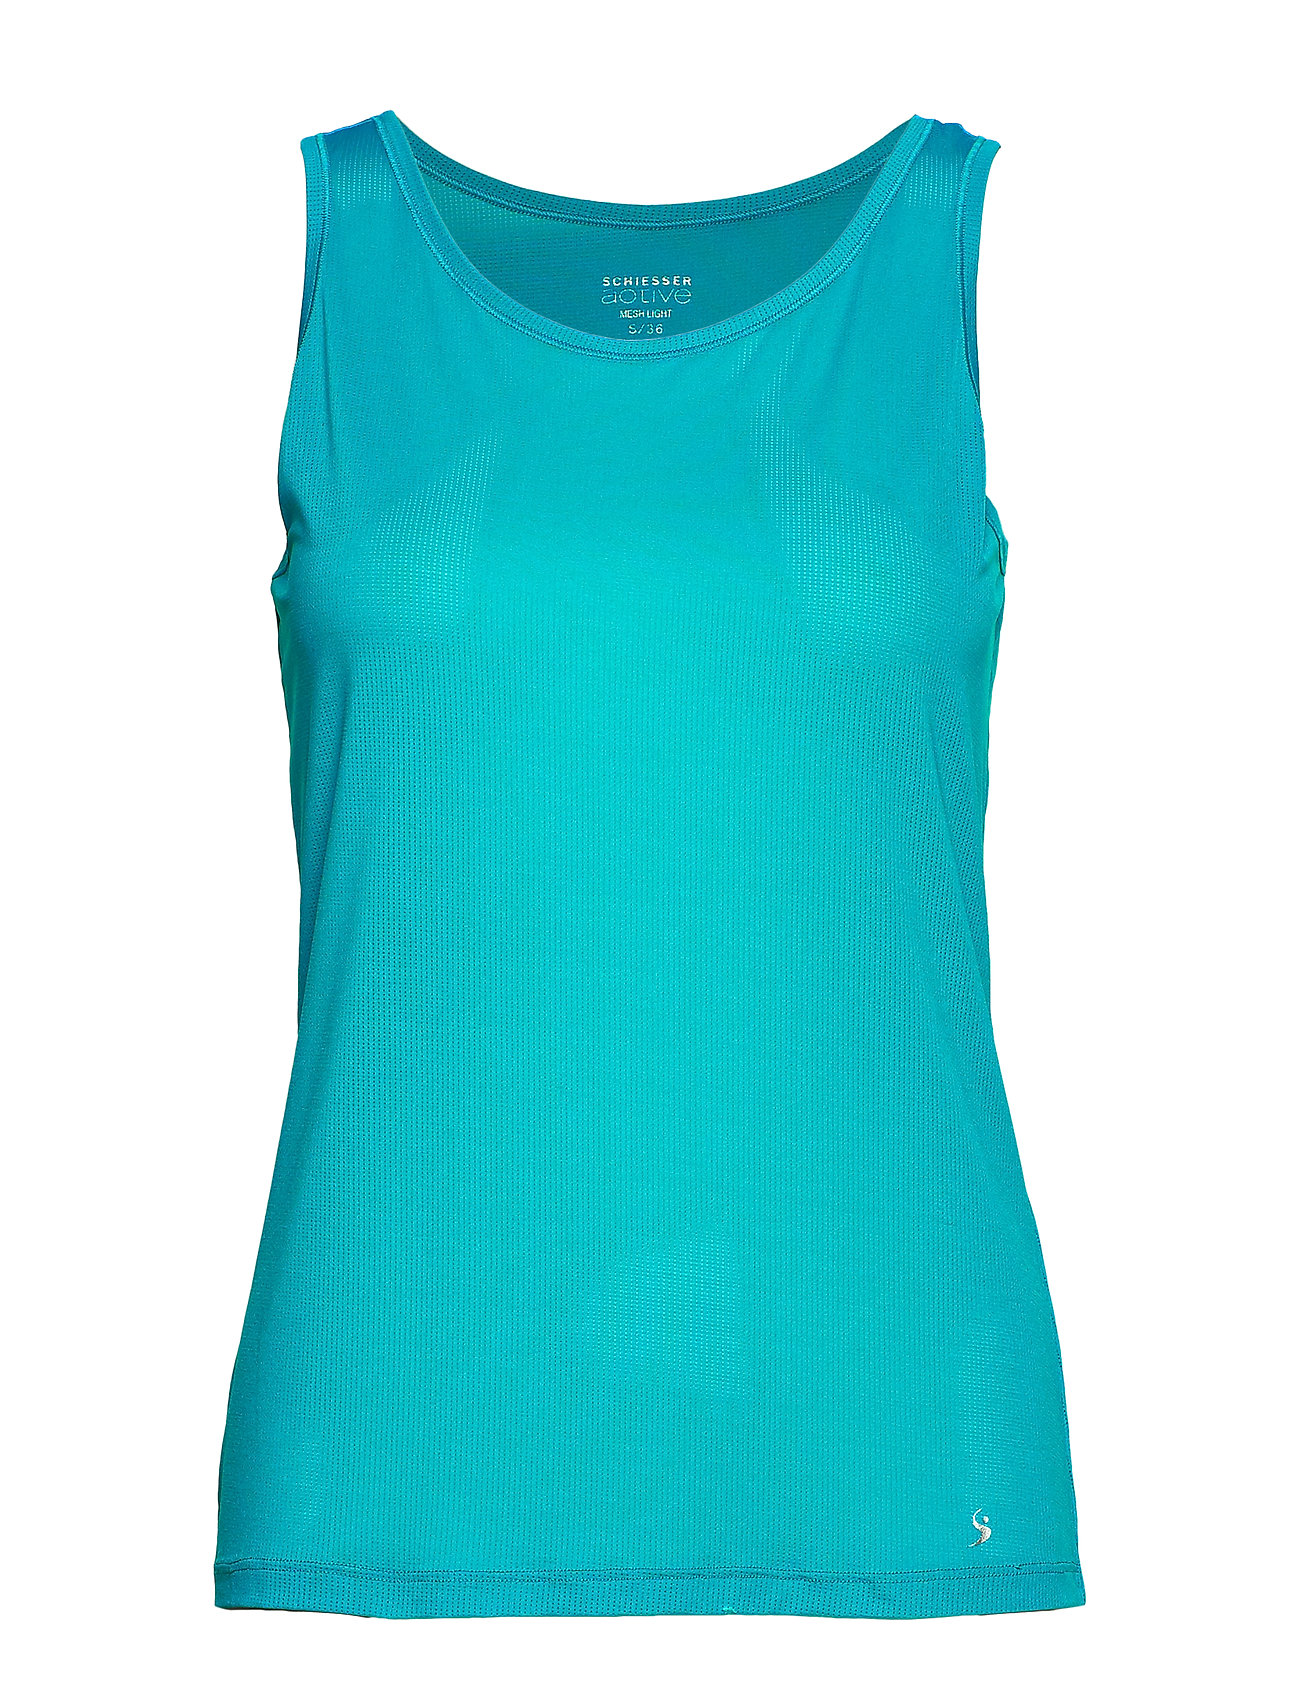 Schiesser Singlet - ASSORTED 1